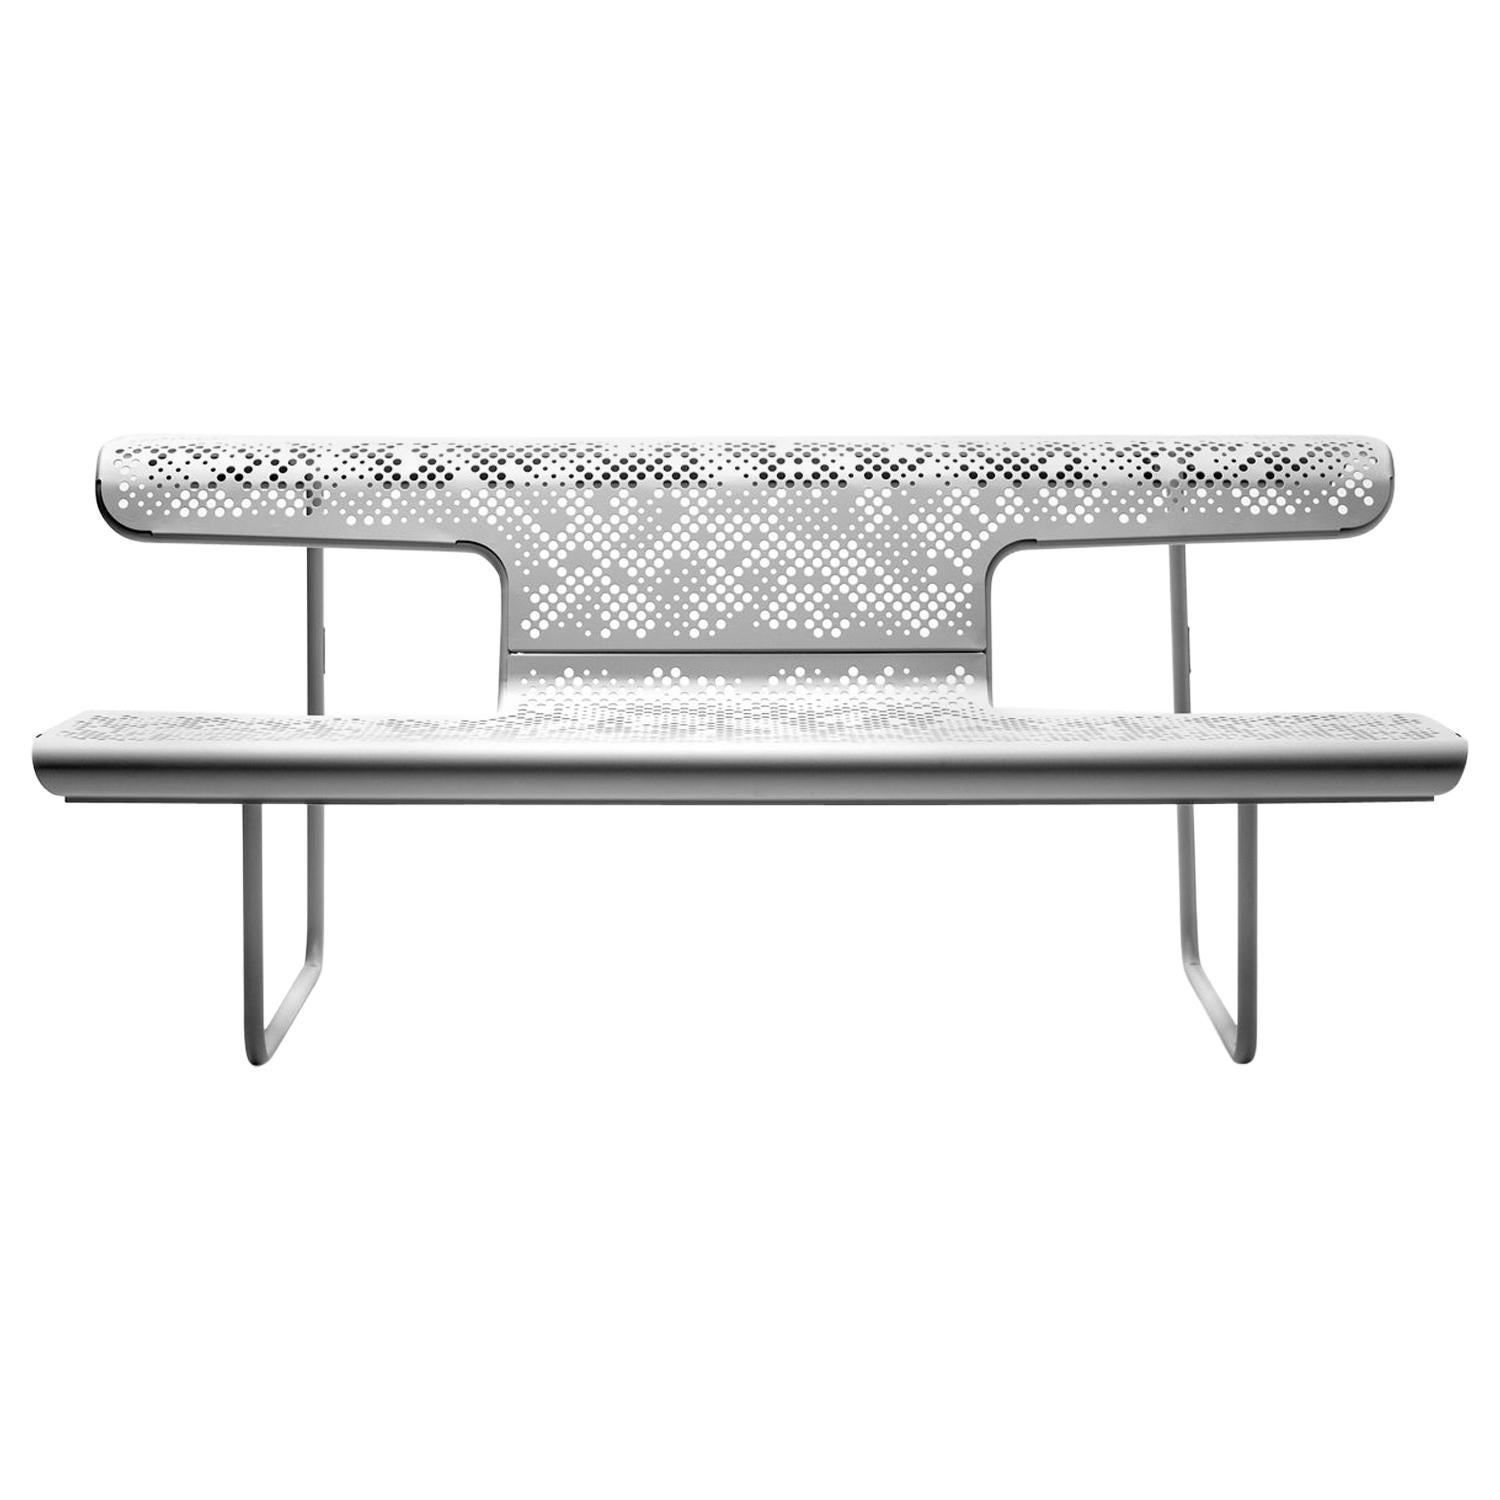 Public bench in perforated steel designed by Alfredo Häberli